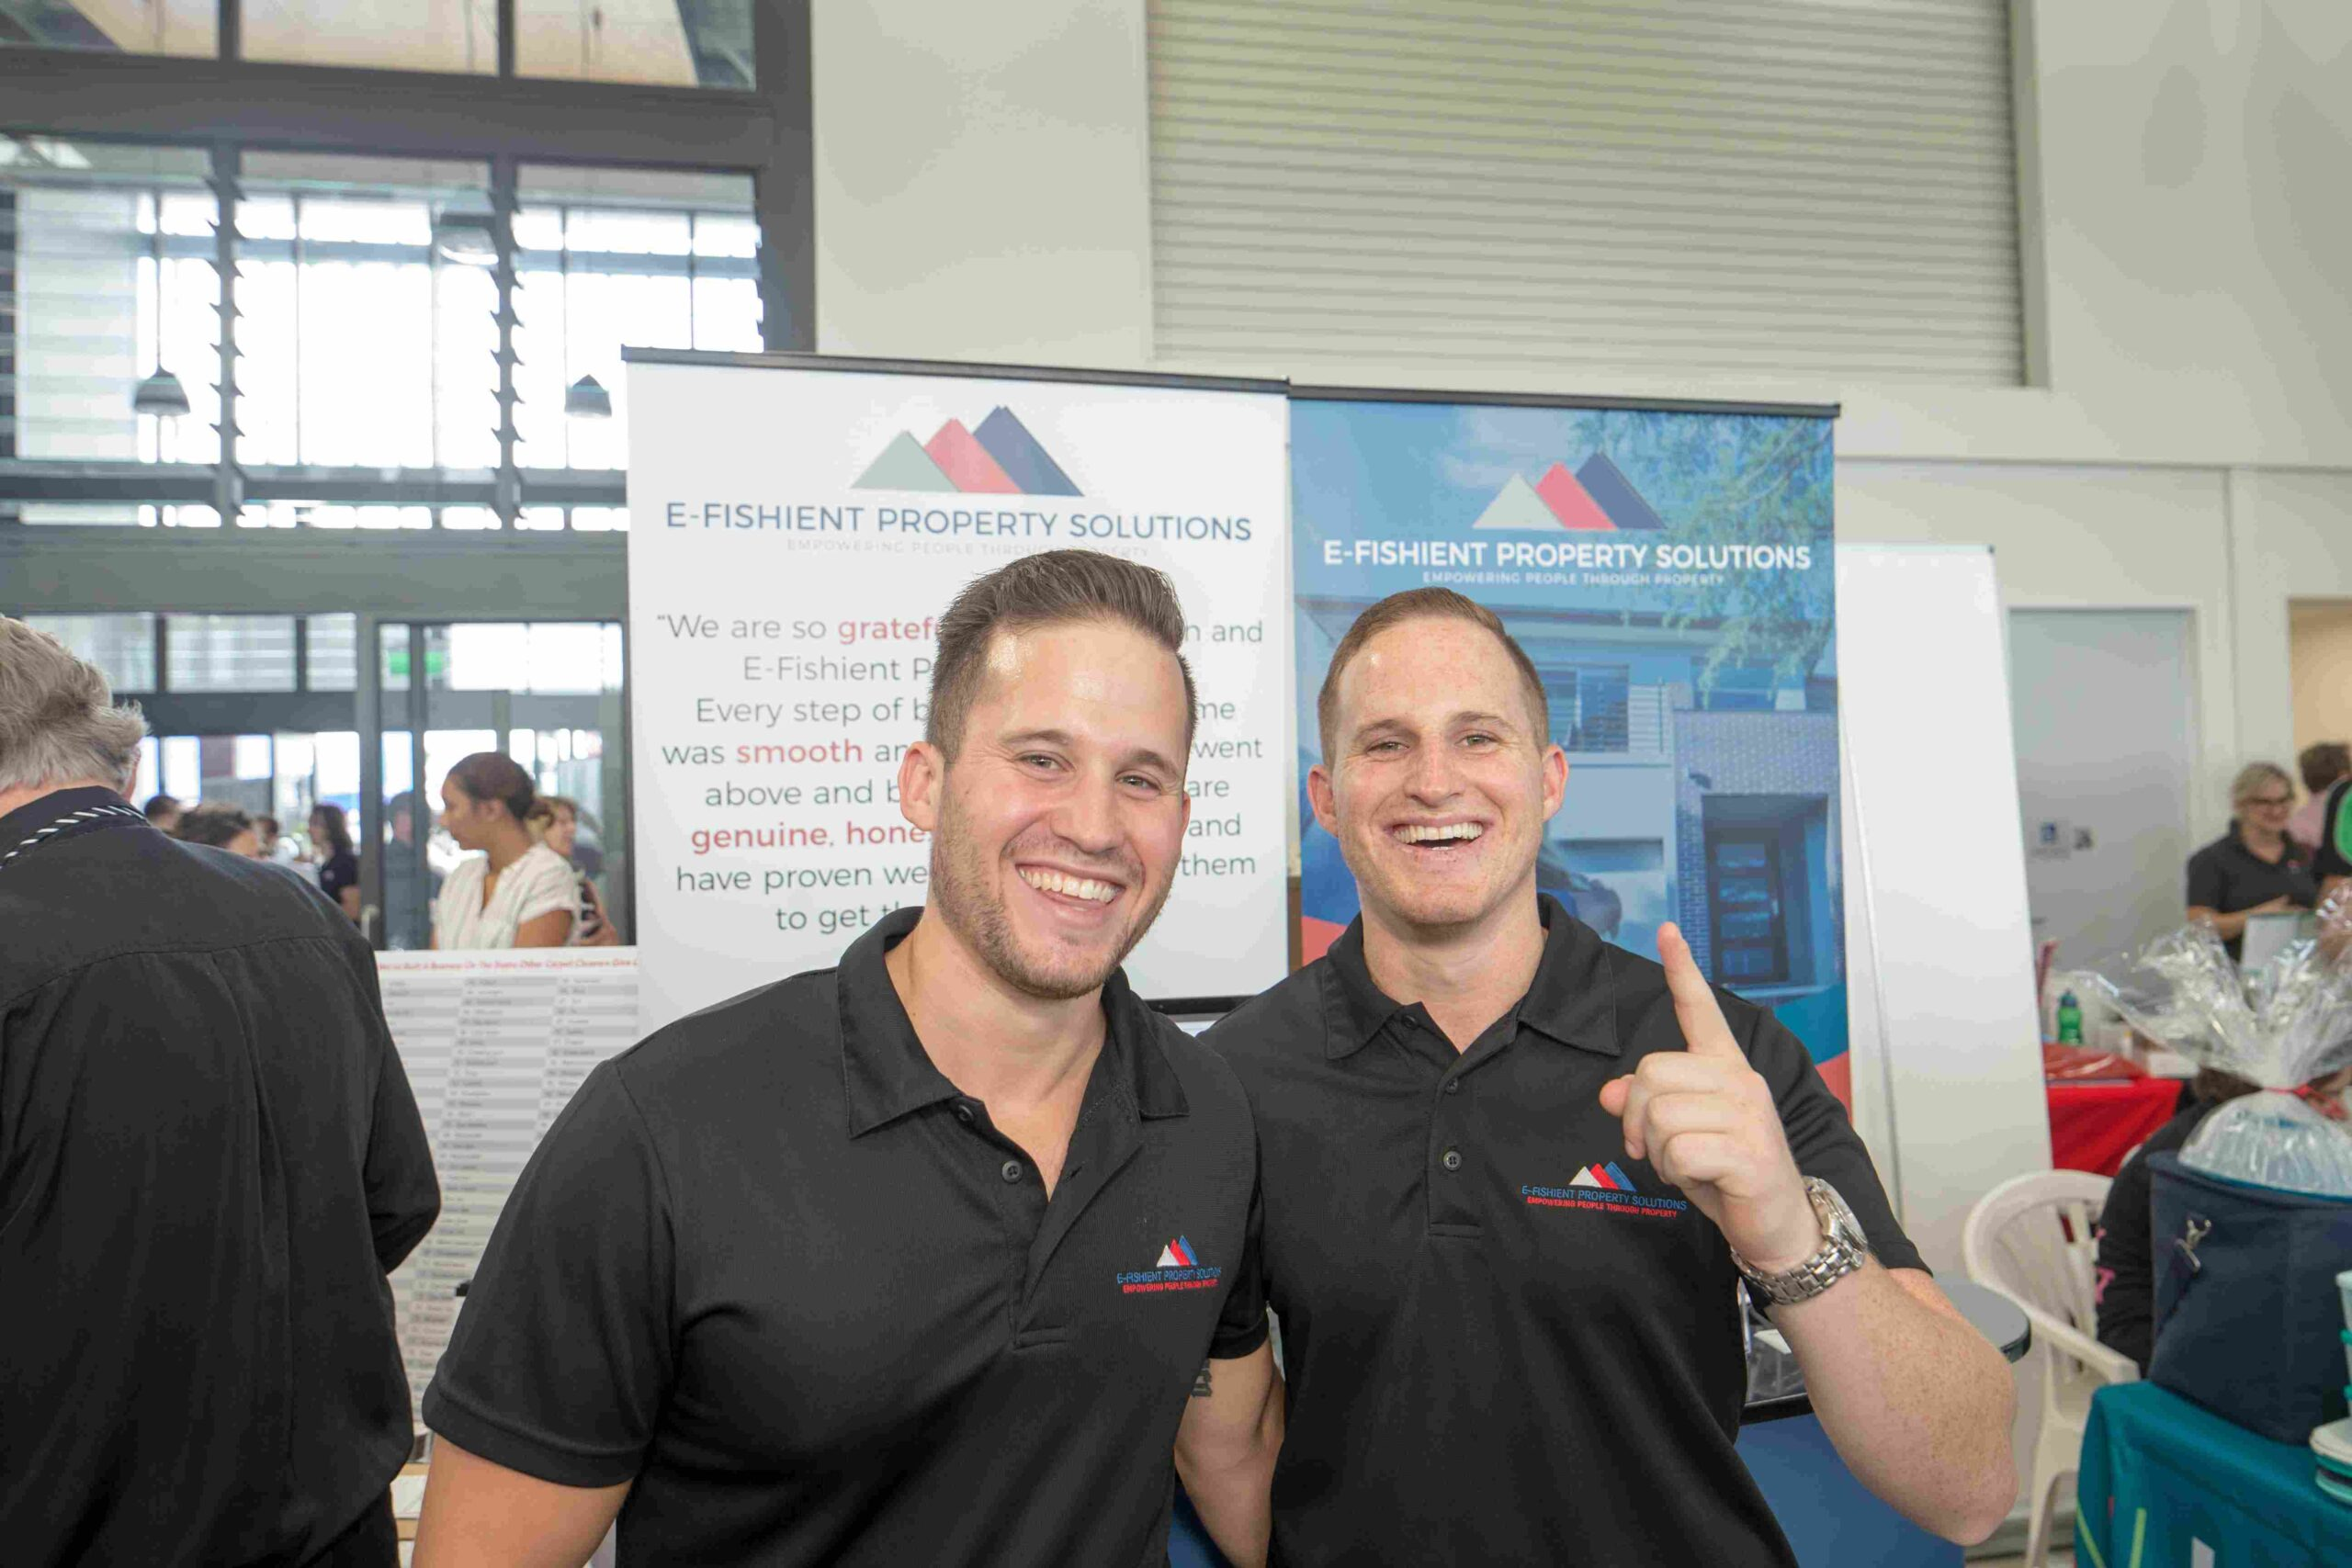 Small Business Expos - E-Fishient Property Solutions